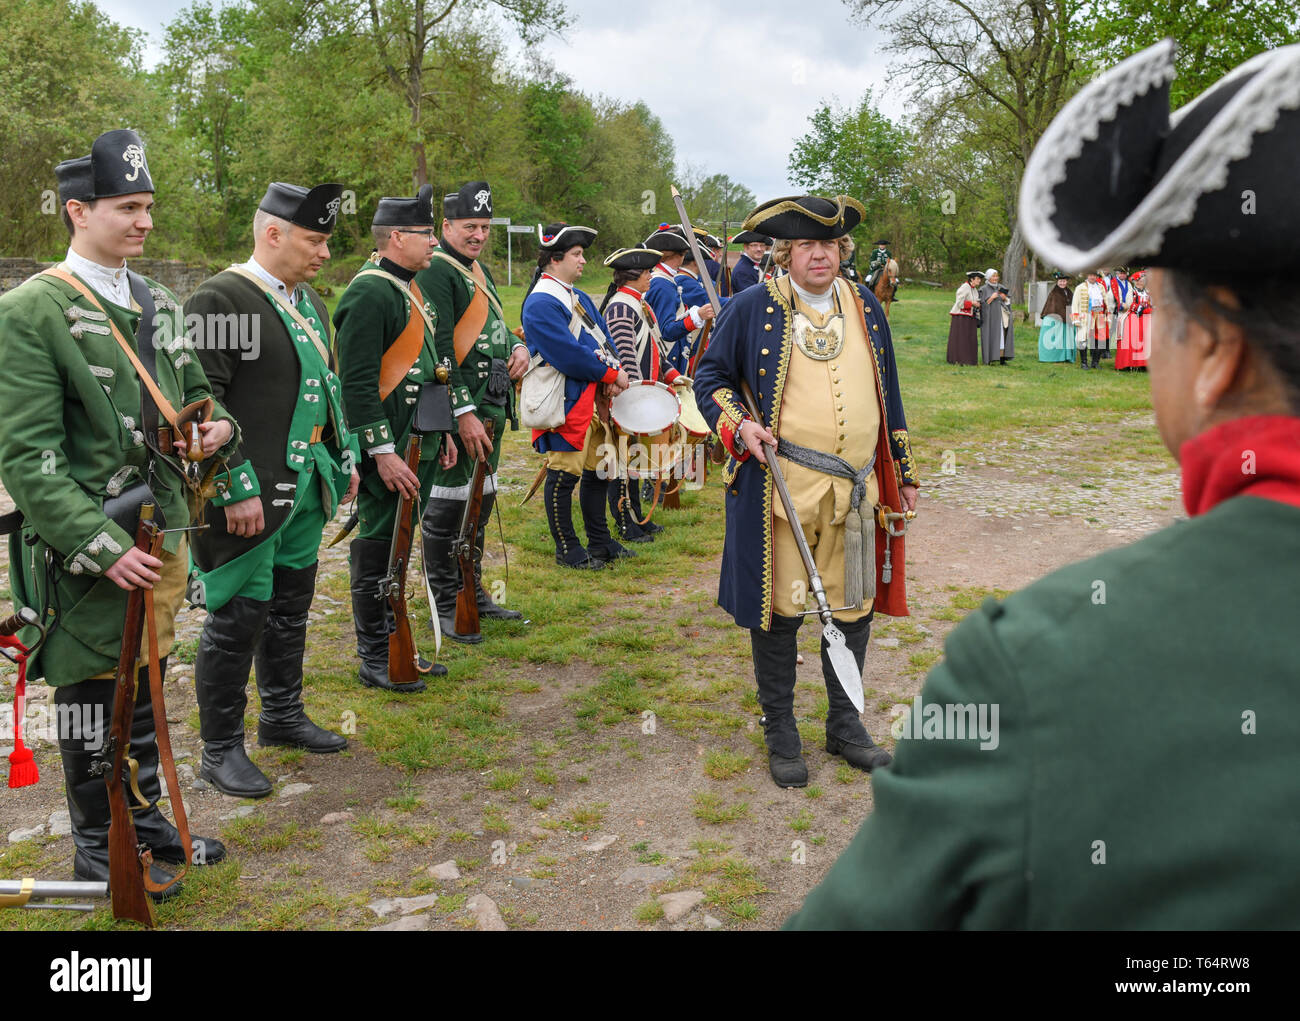 27 04 2019, Poland, Kostrzyn: Participants in historical